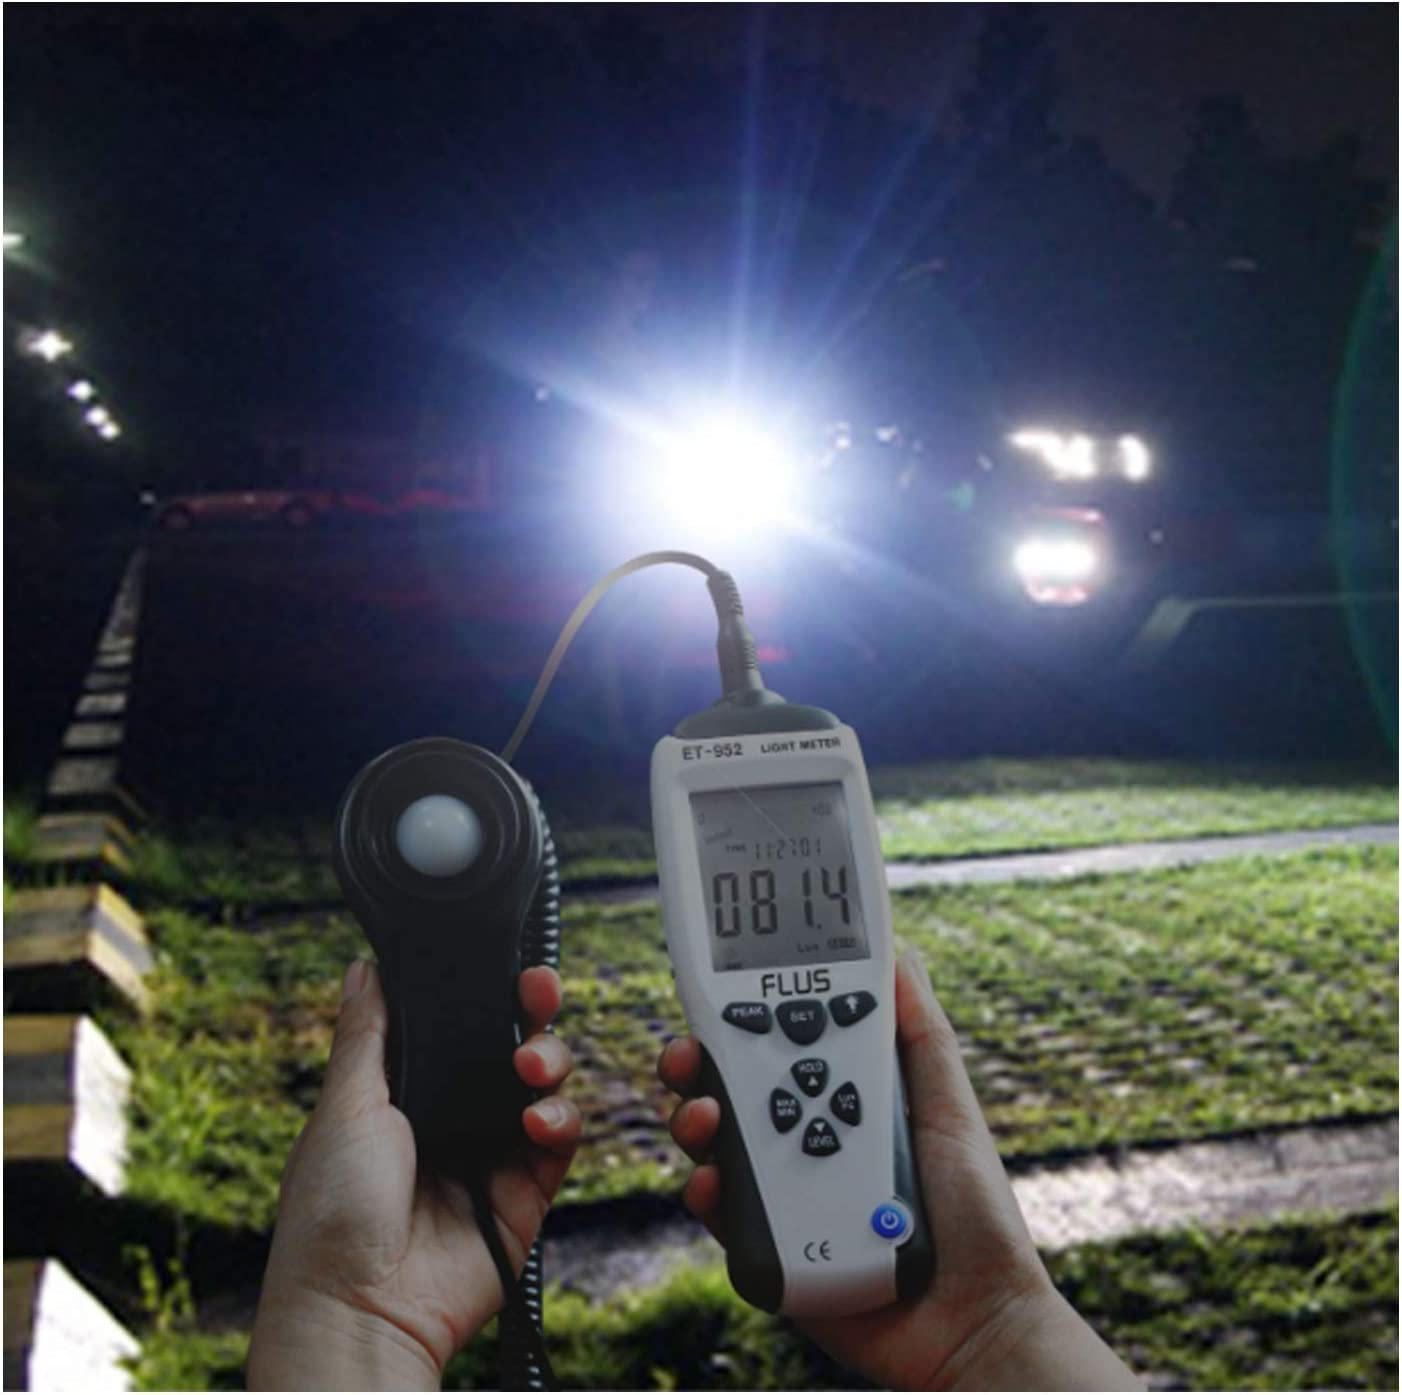 wide test range Digital ET-952 Professional Digital Light Meter Luxmeter Lux//FC Meters Luminometer Photometer 400000 Lux Accurate and reliable